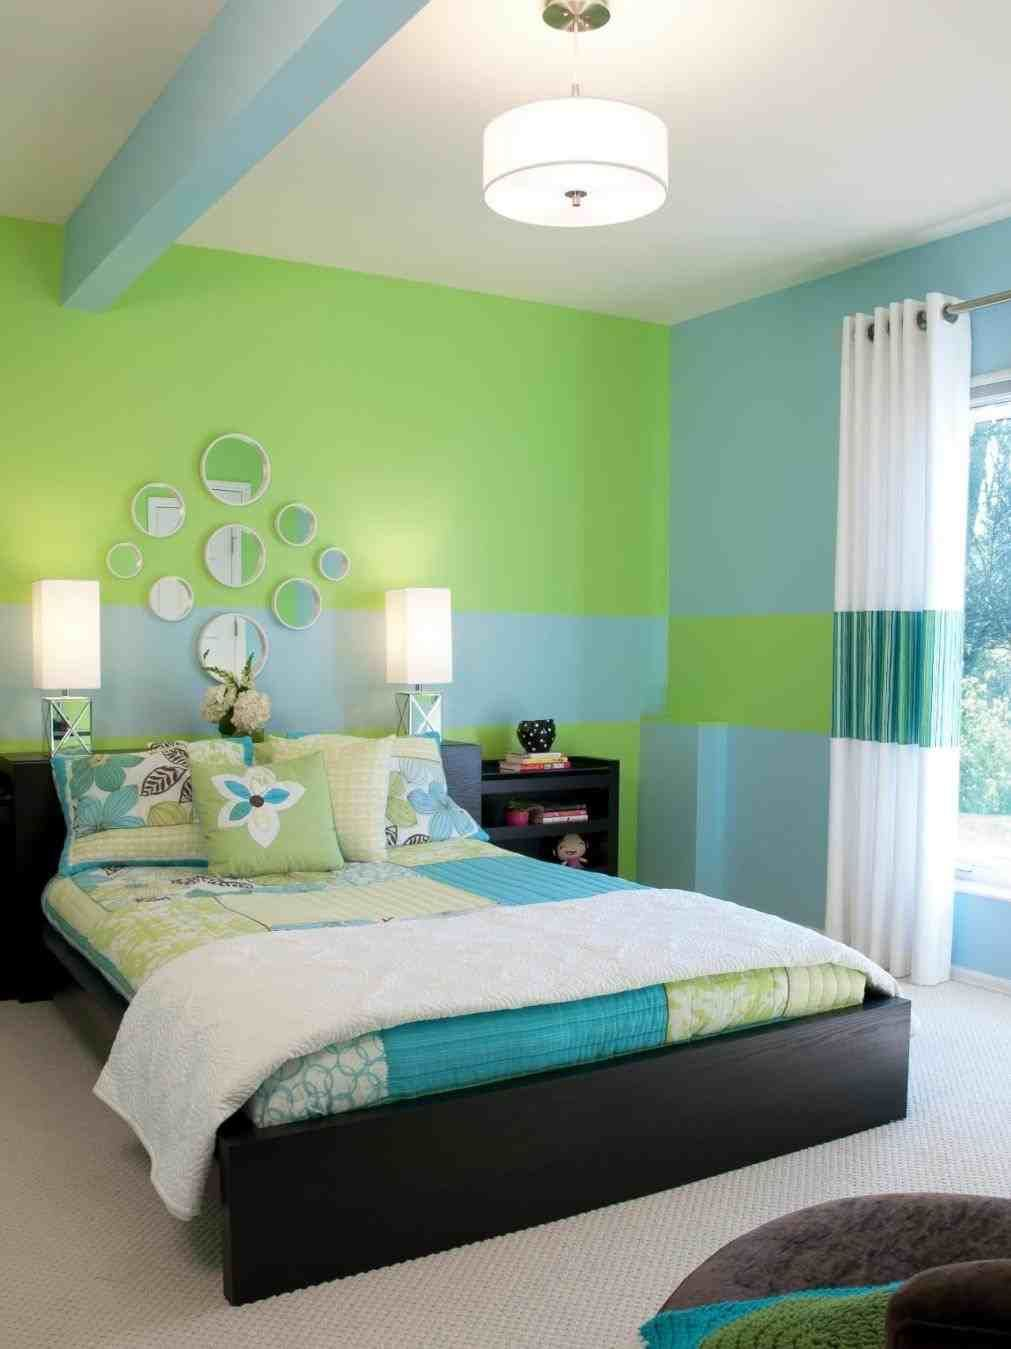 simple room decoration ideas for small bedroom | Green ... on Teenager Simple Small Bedroom Design  id=22838